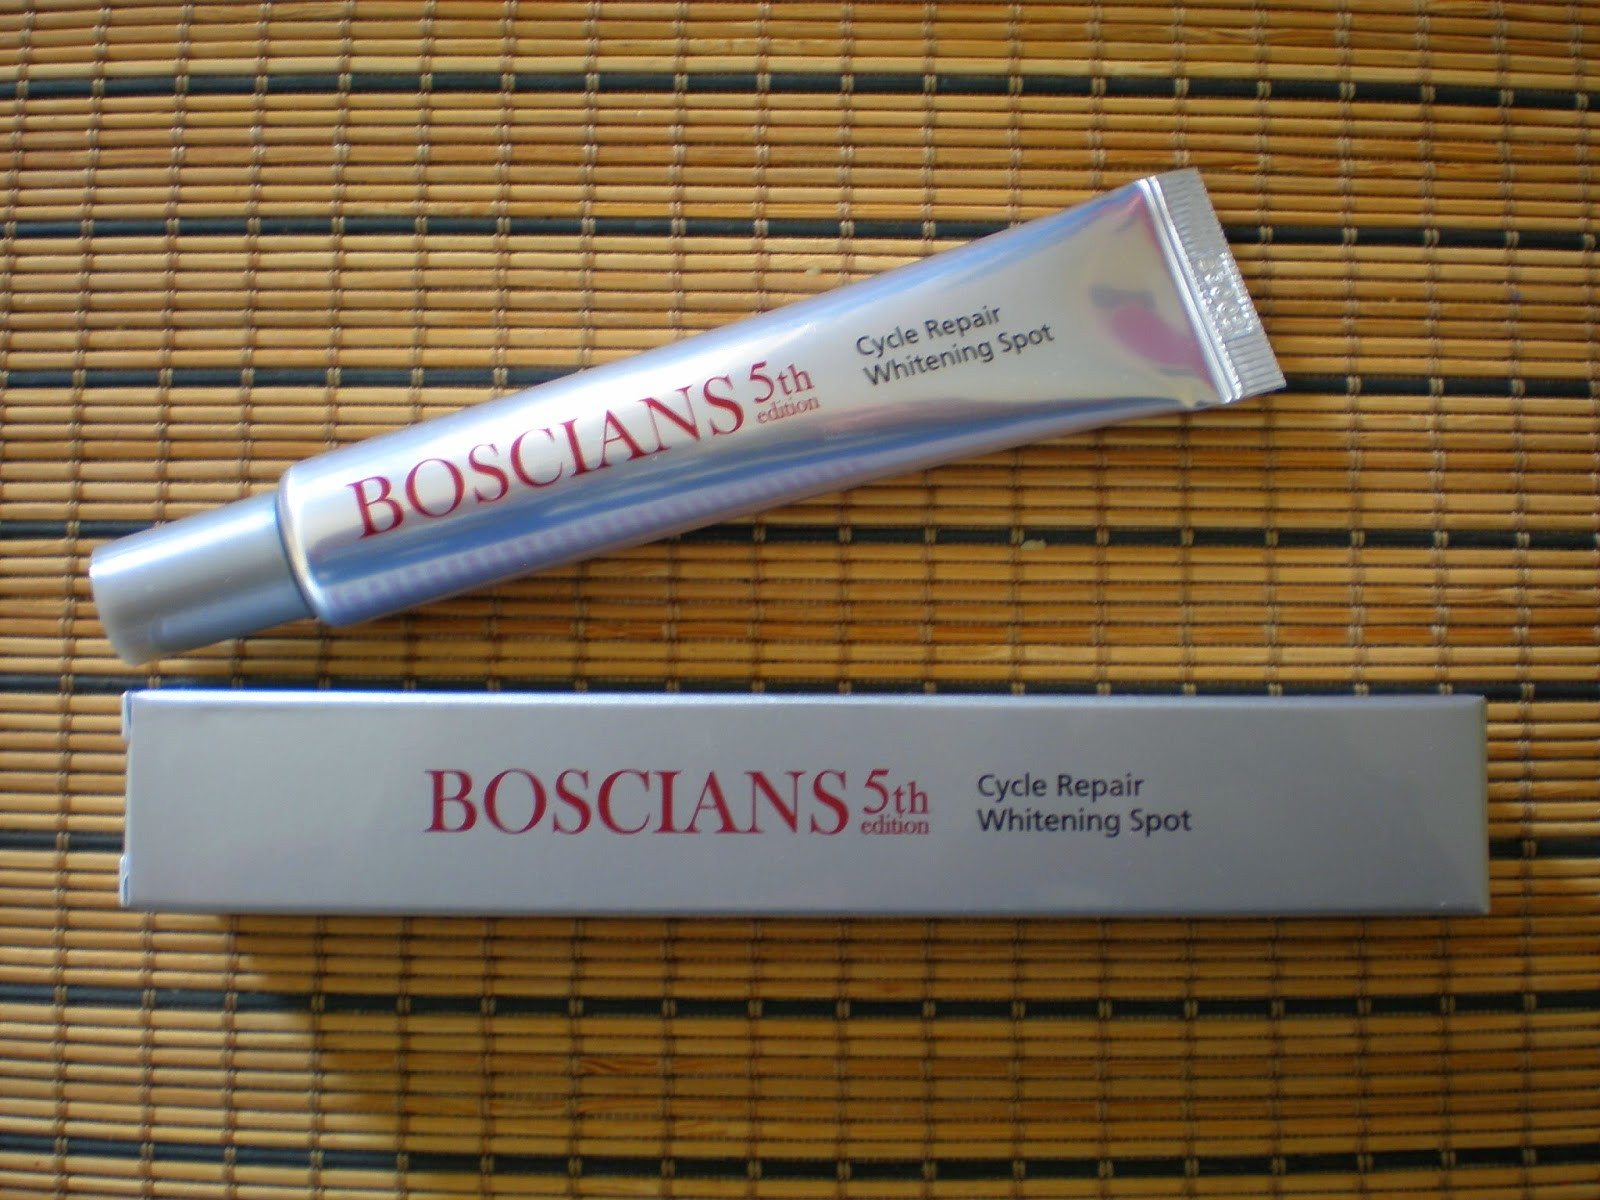 Boscians Cycle Repair Whitening Spot